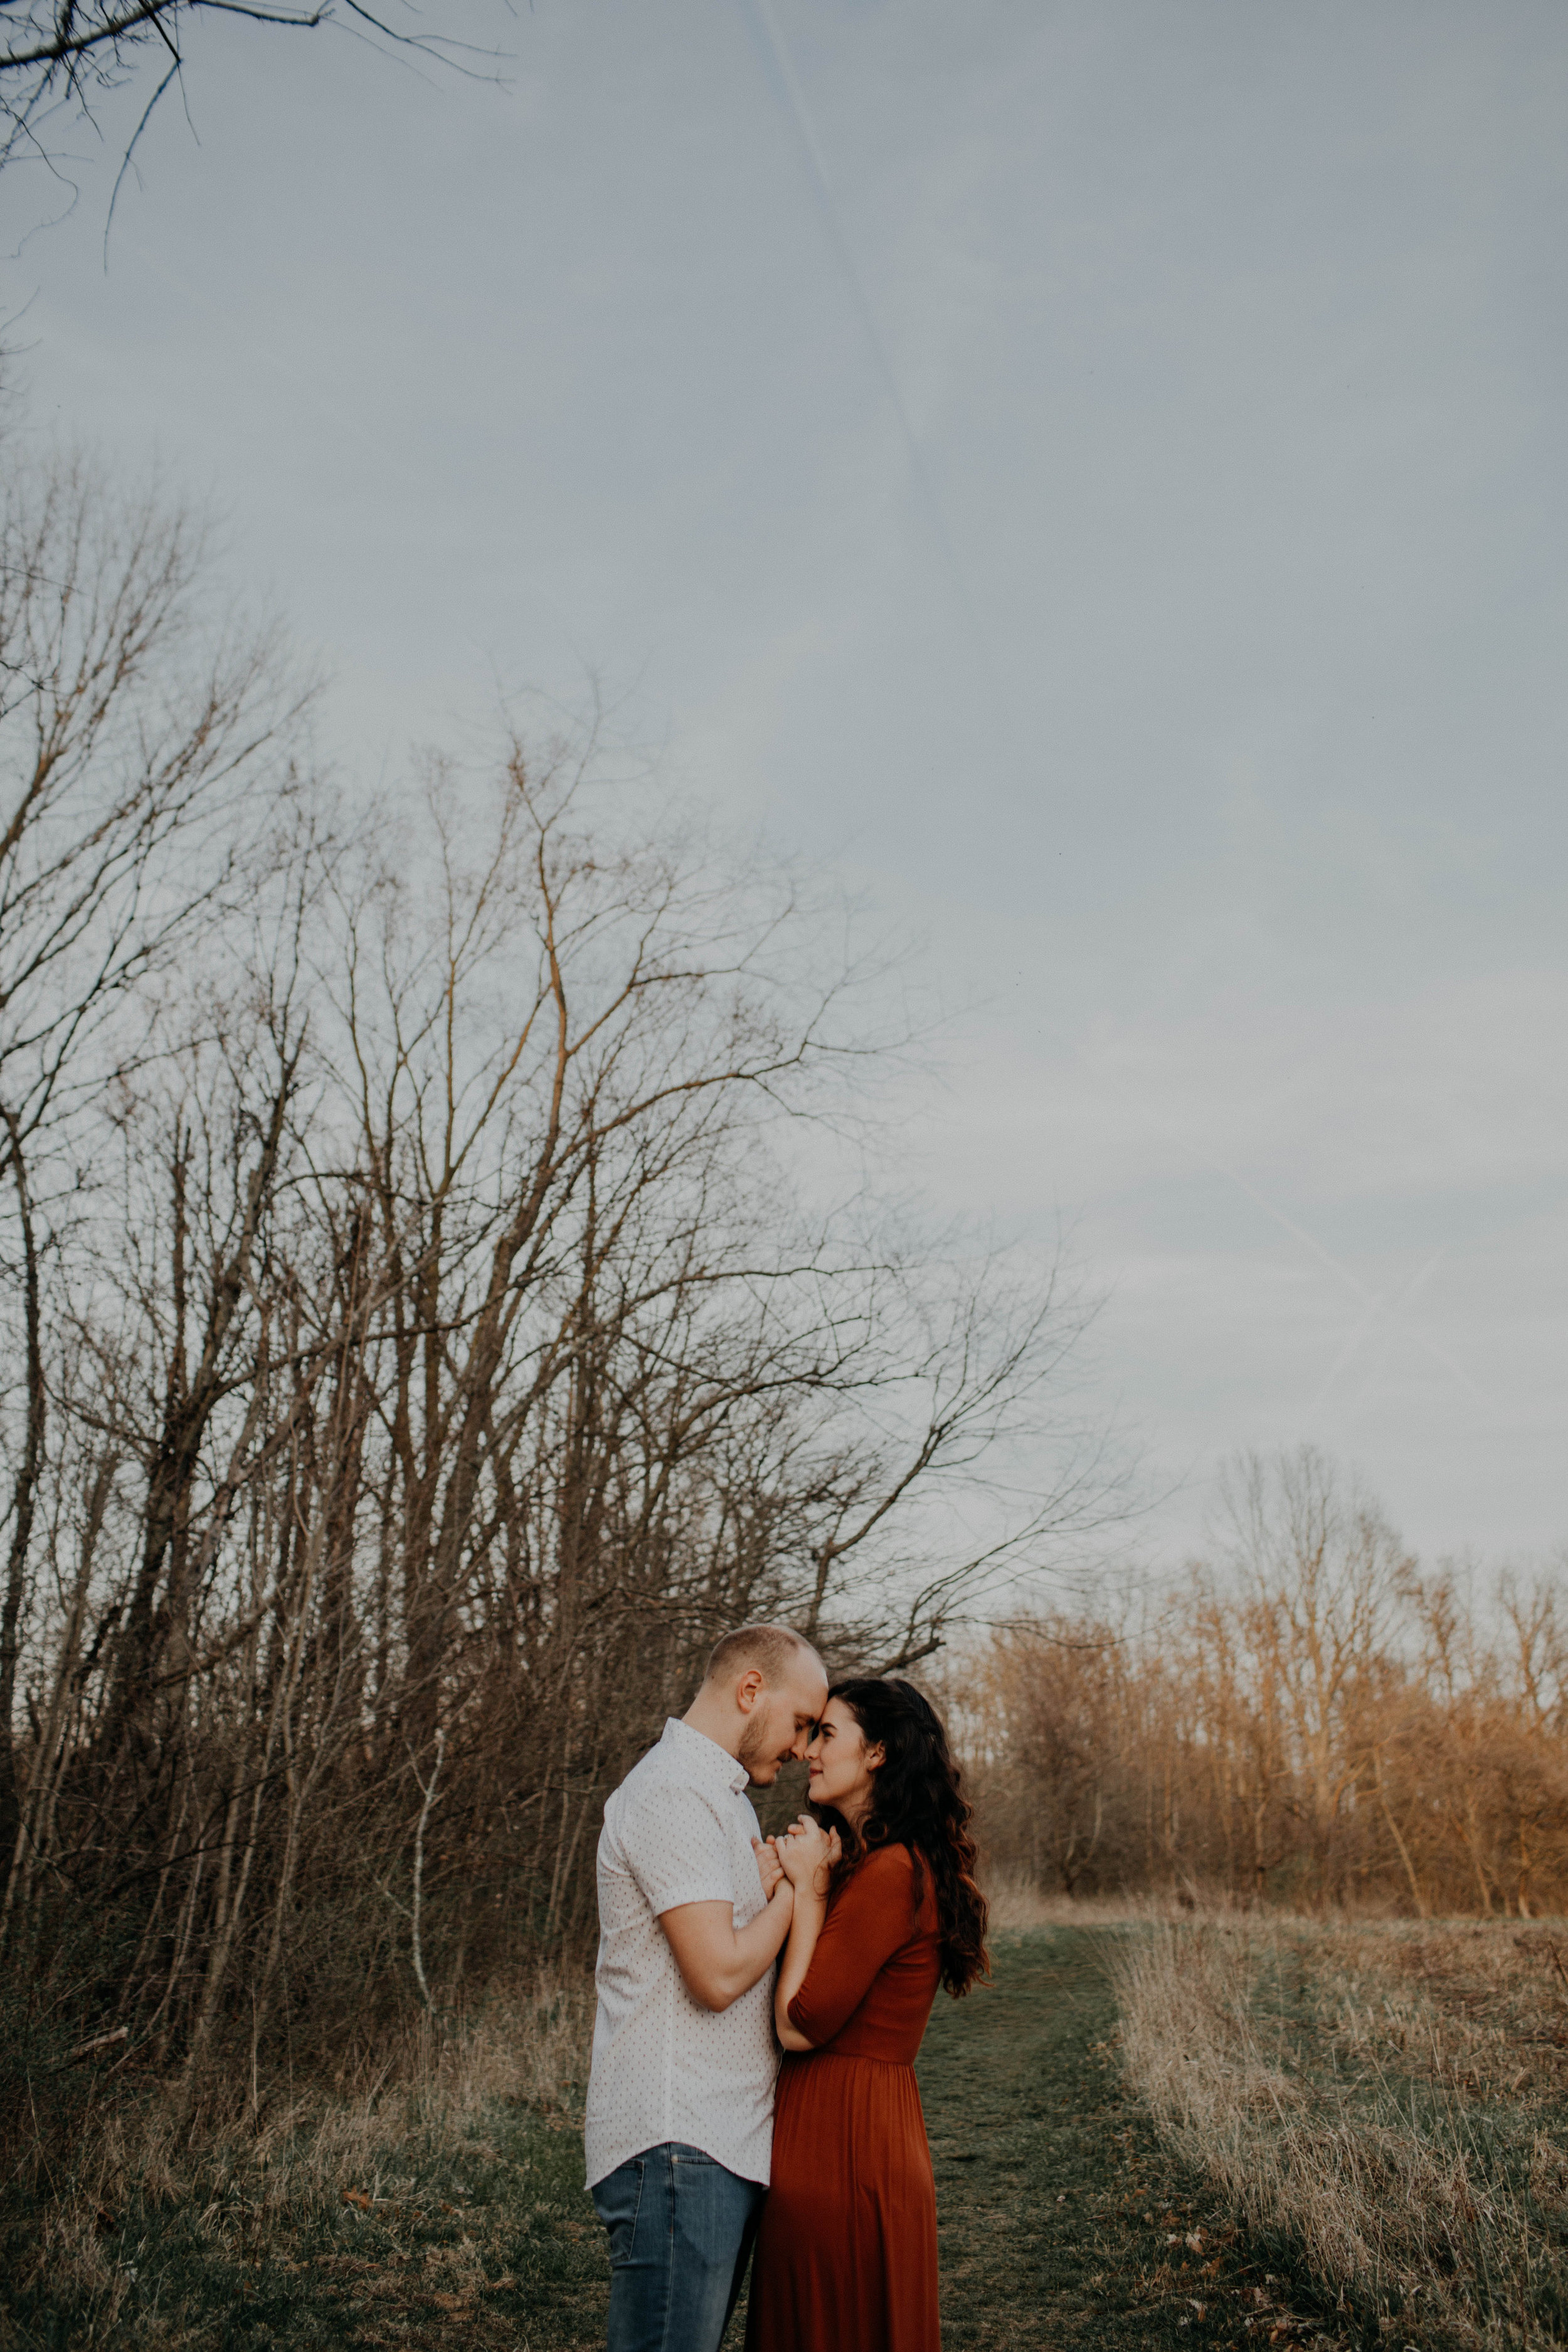 highbanks metro park columbus ohio wedding and couples session photographer54.jpg